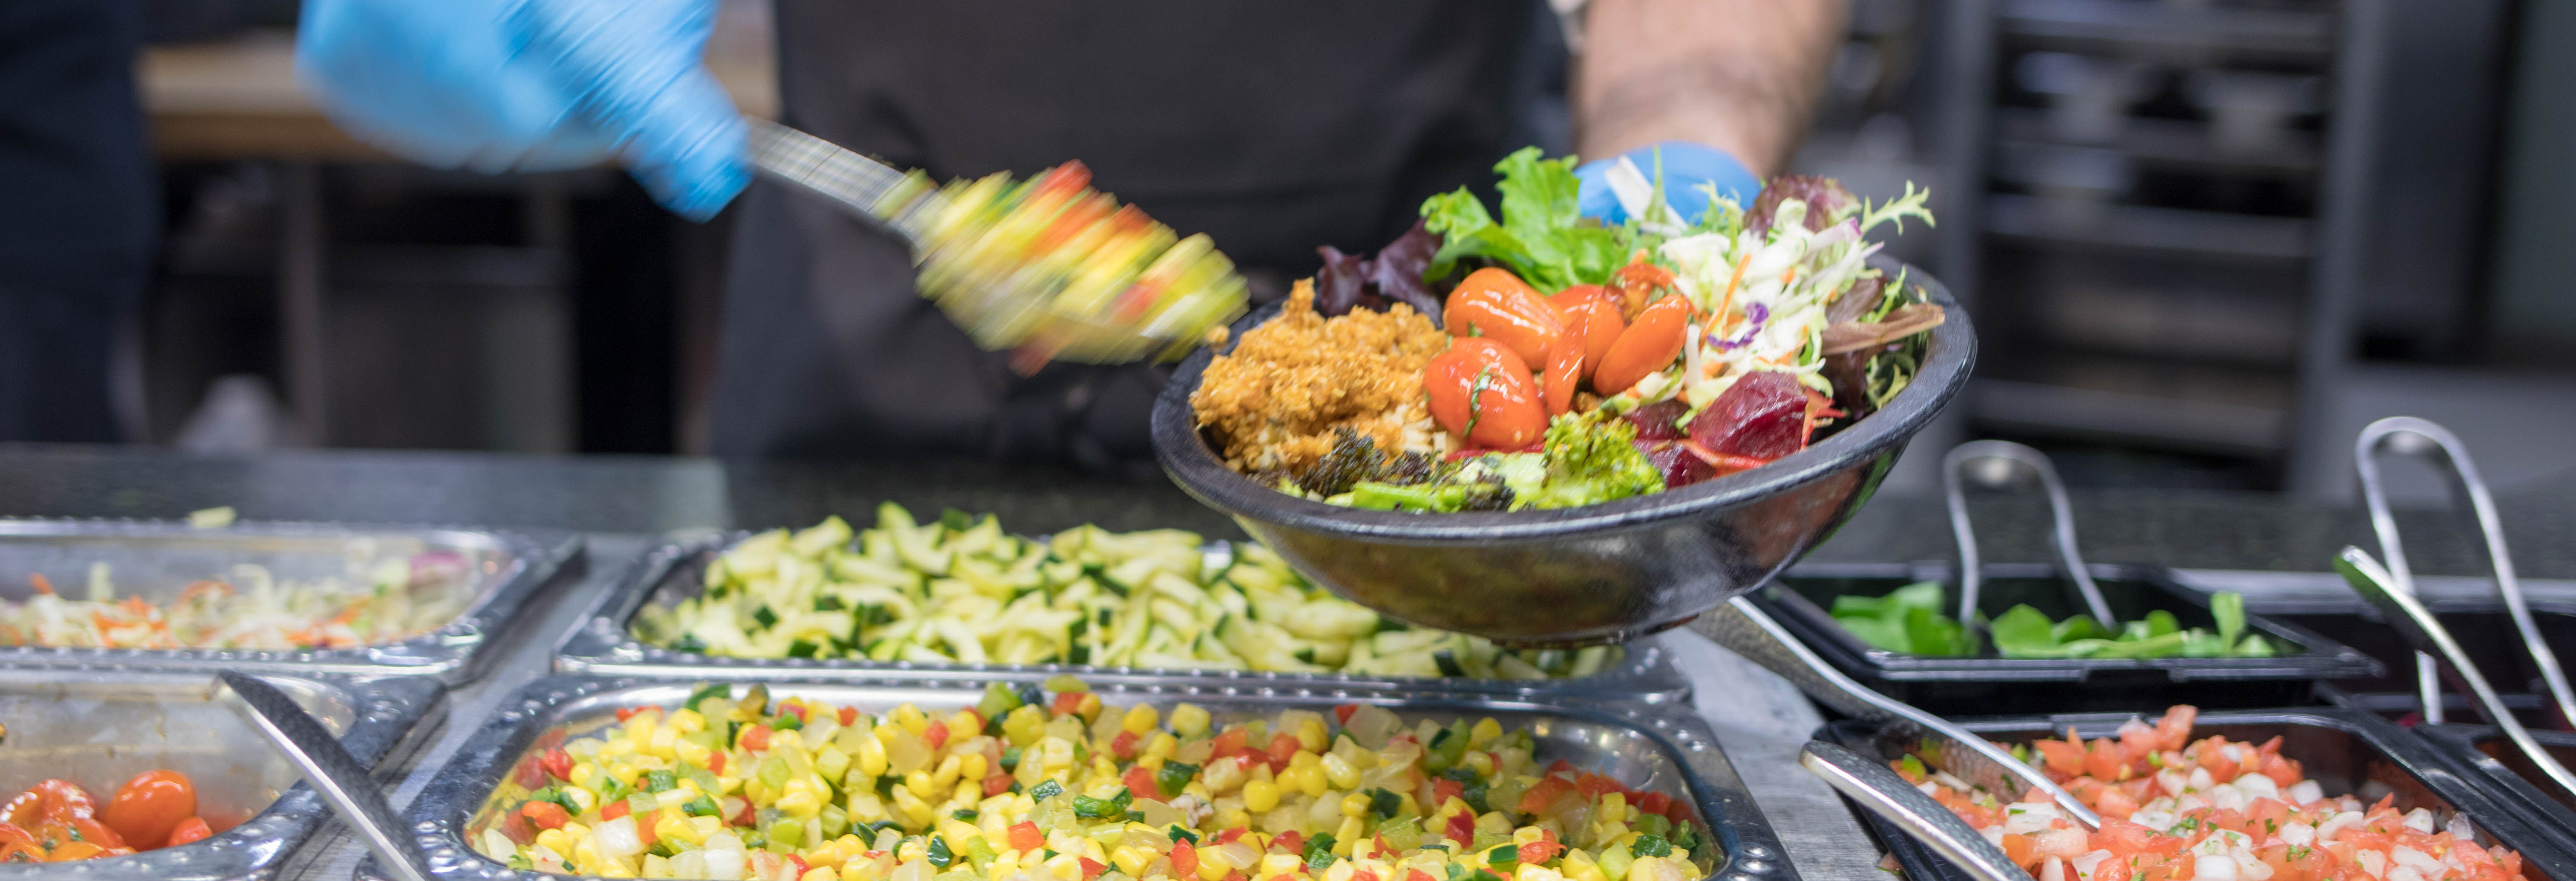 A Dining Services employee prepares a nutritious meal at the Grain Bowl station at Southside Cafe.